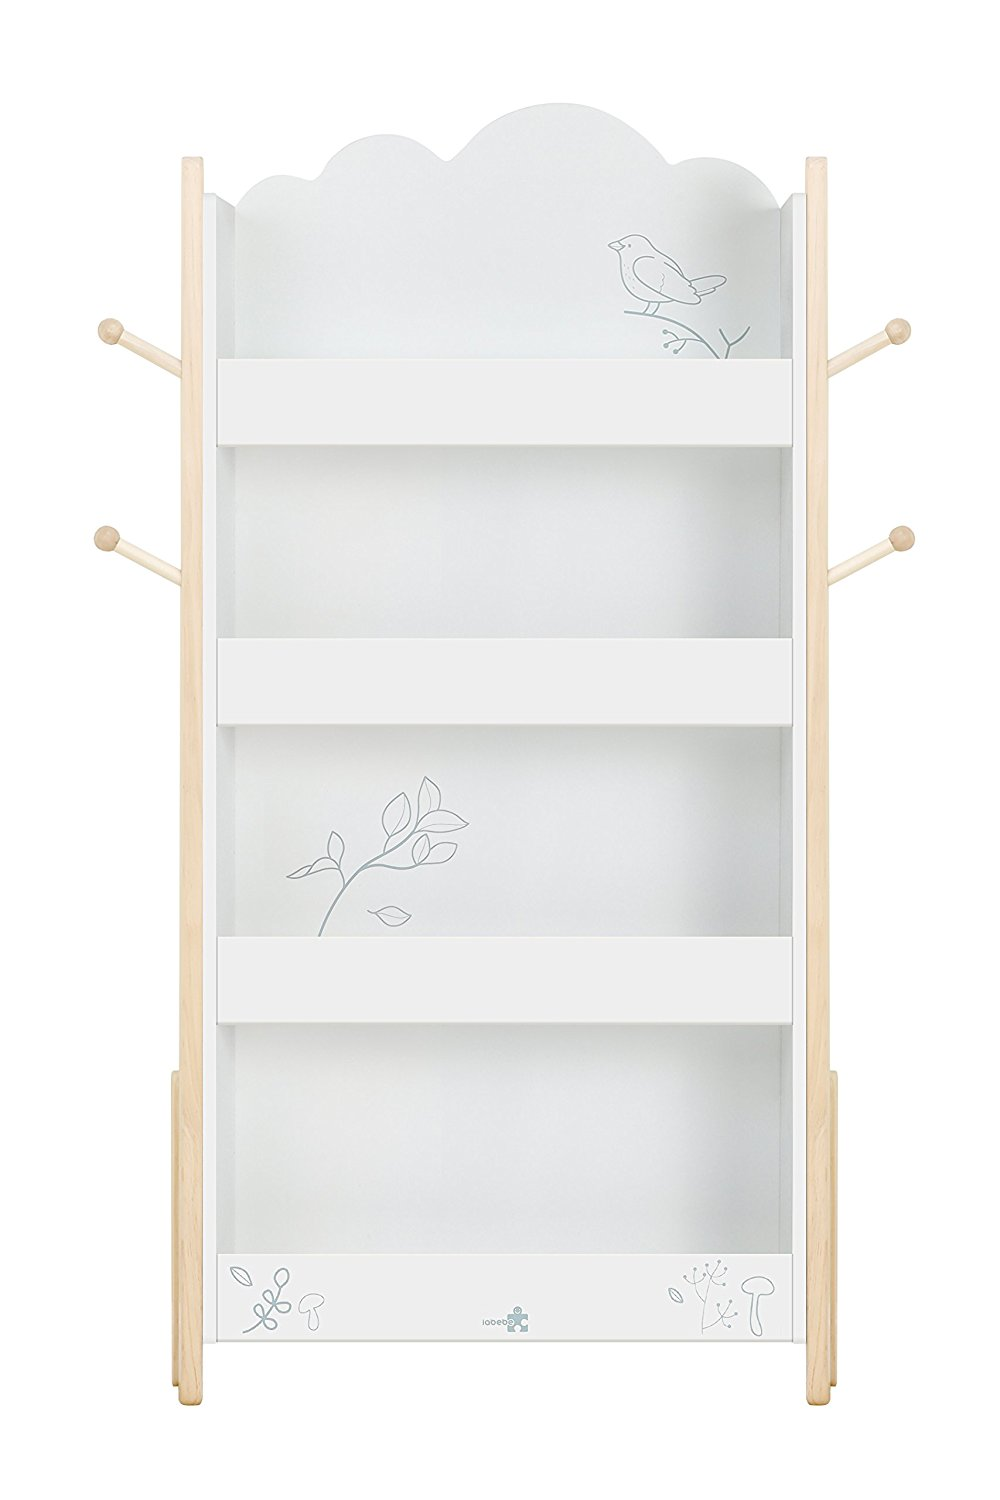 labebe Kid Book Display, Wood White Bookshelf Kid 1 Year Up